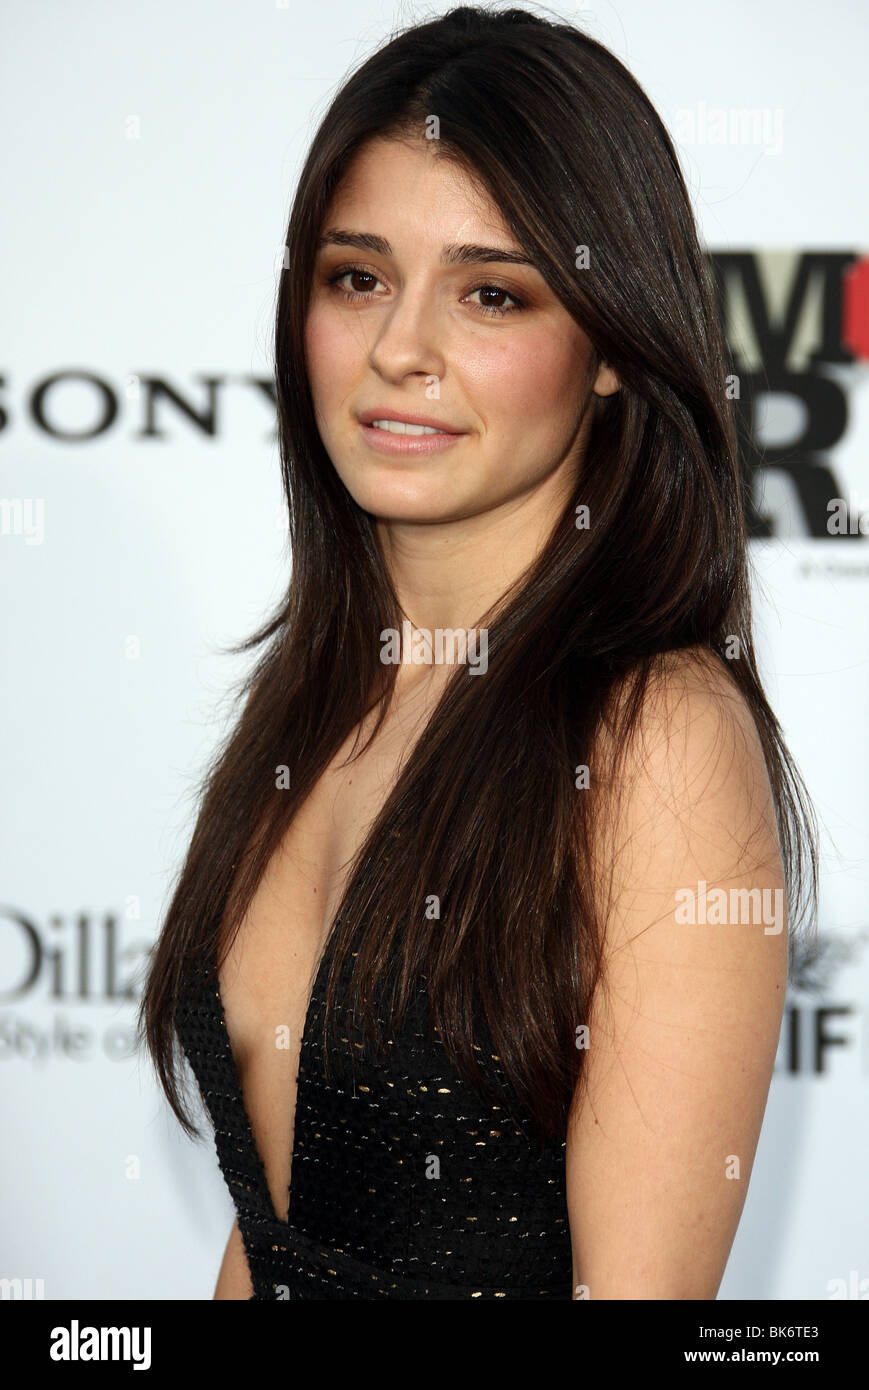 Shiri Appleby Shiri Appleby new photo